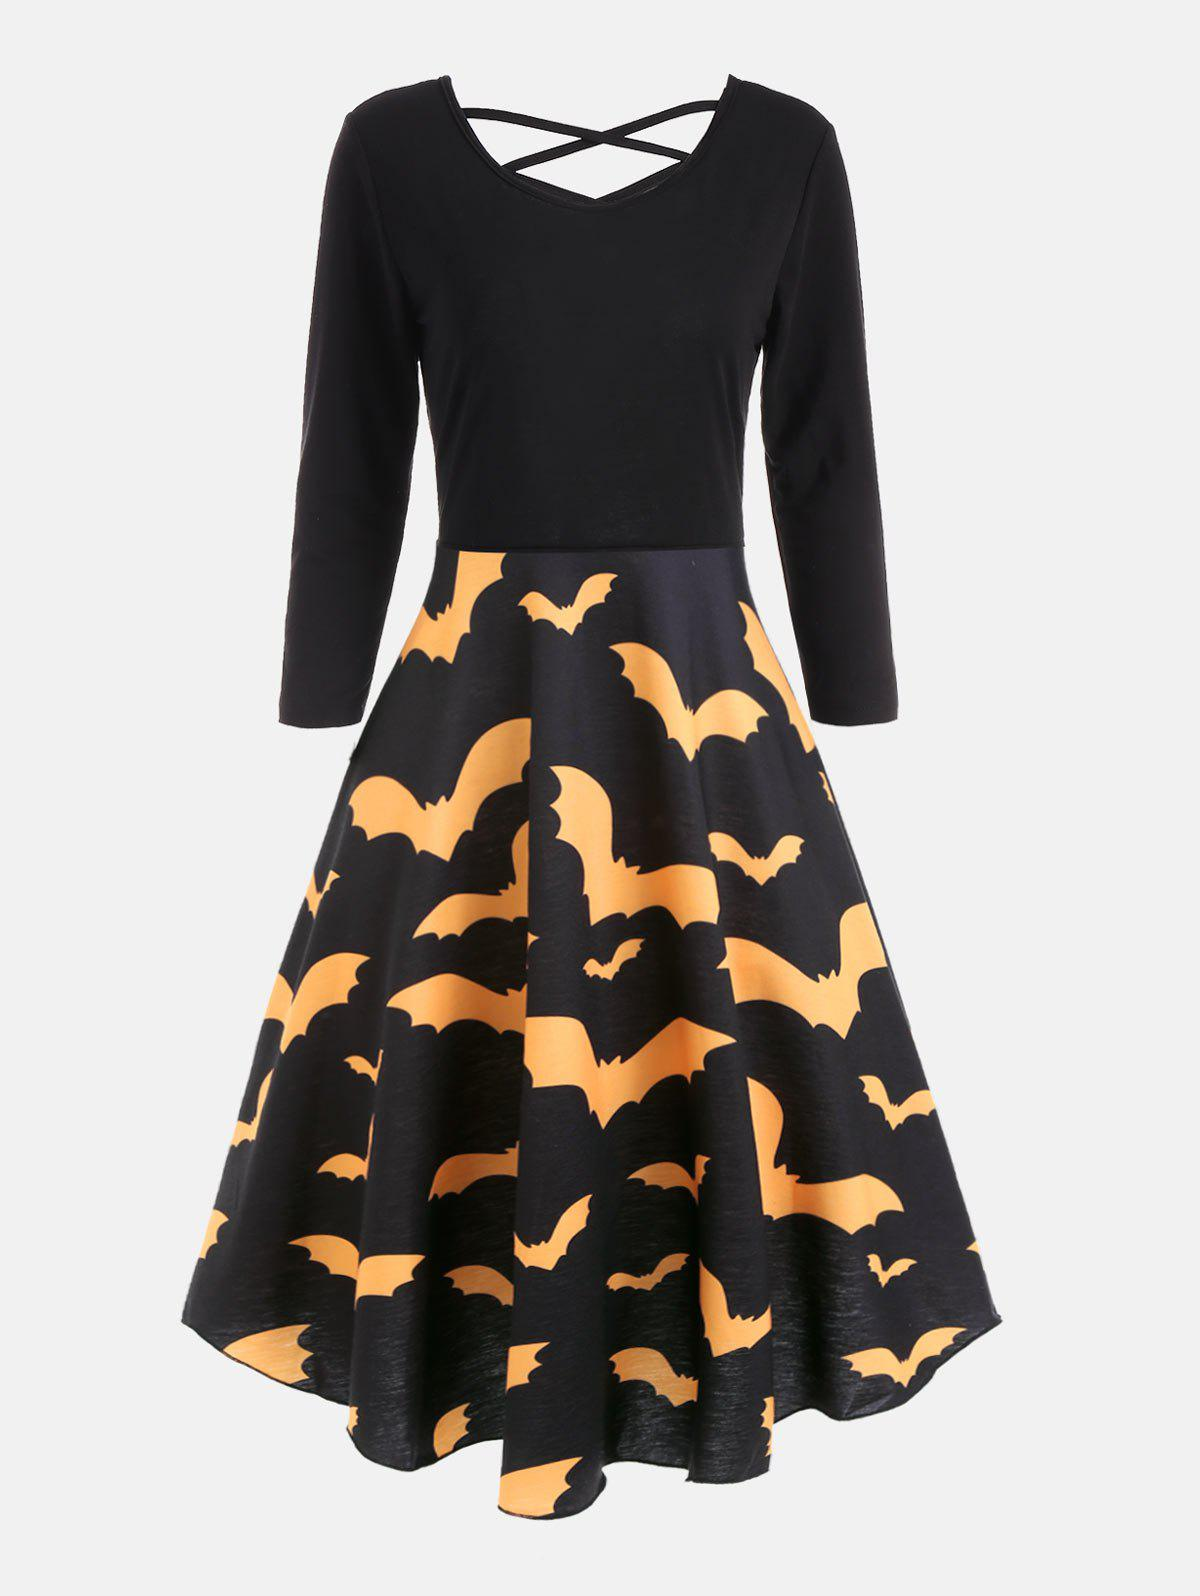 New Bat Print Cross Back Fit and Flare Dress